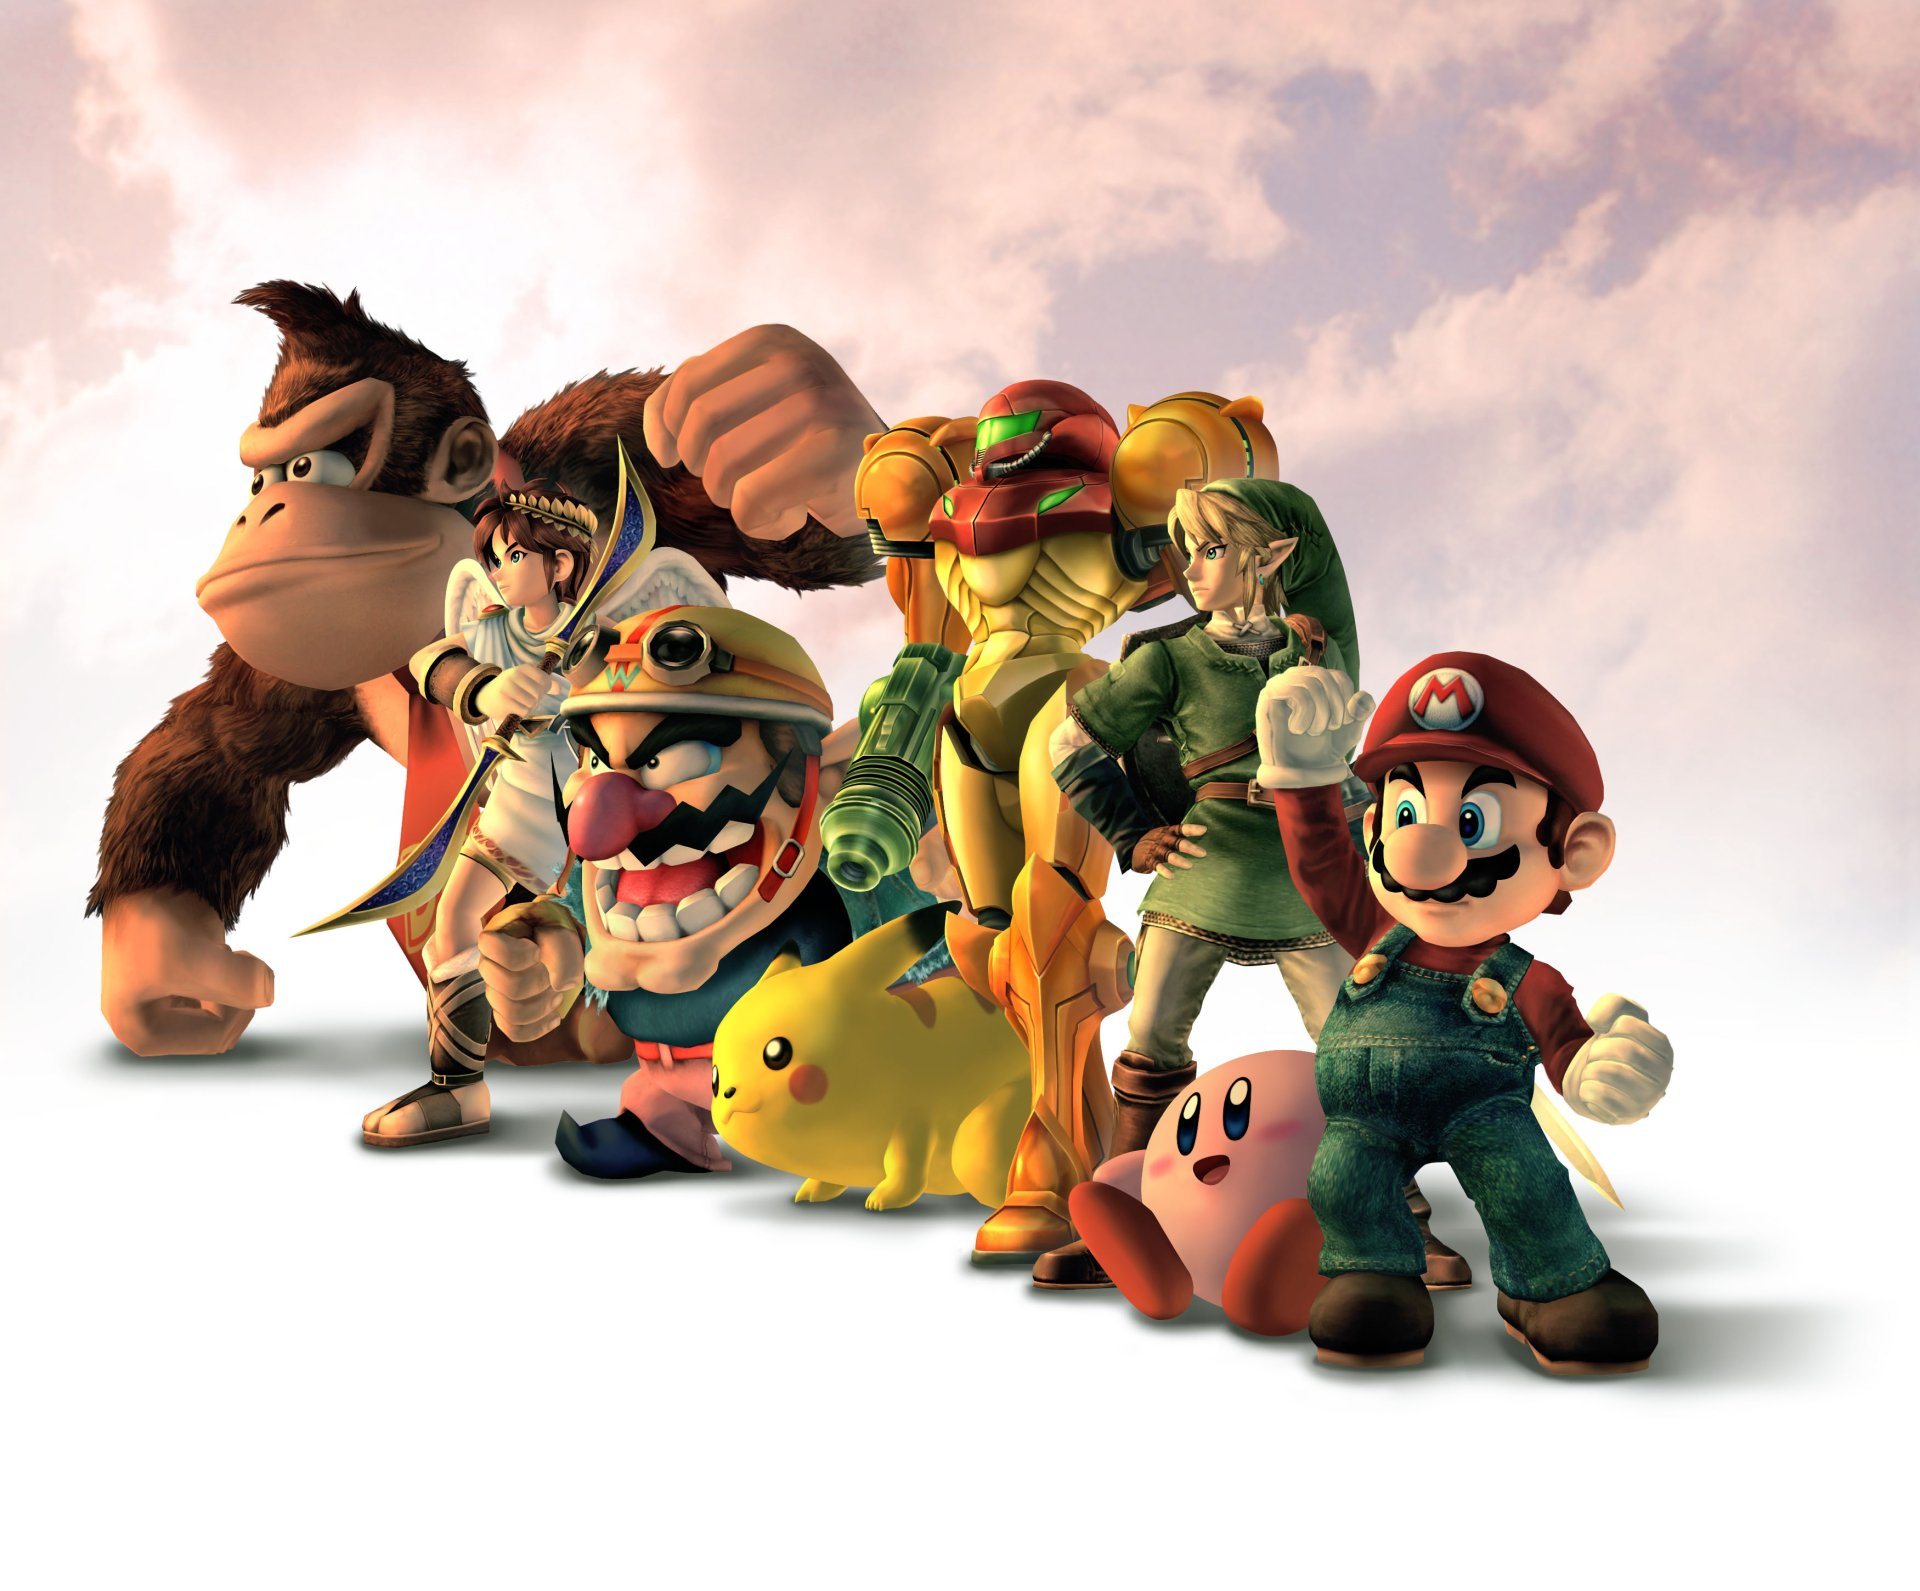 Video Game - Super Smash Bros.  Donkey Kong Wario Pikachu Kirby Mario Link Samus Aran Wallpaper